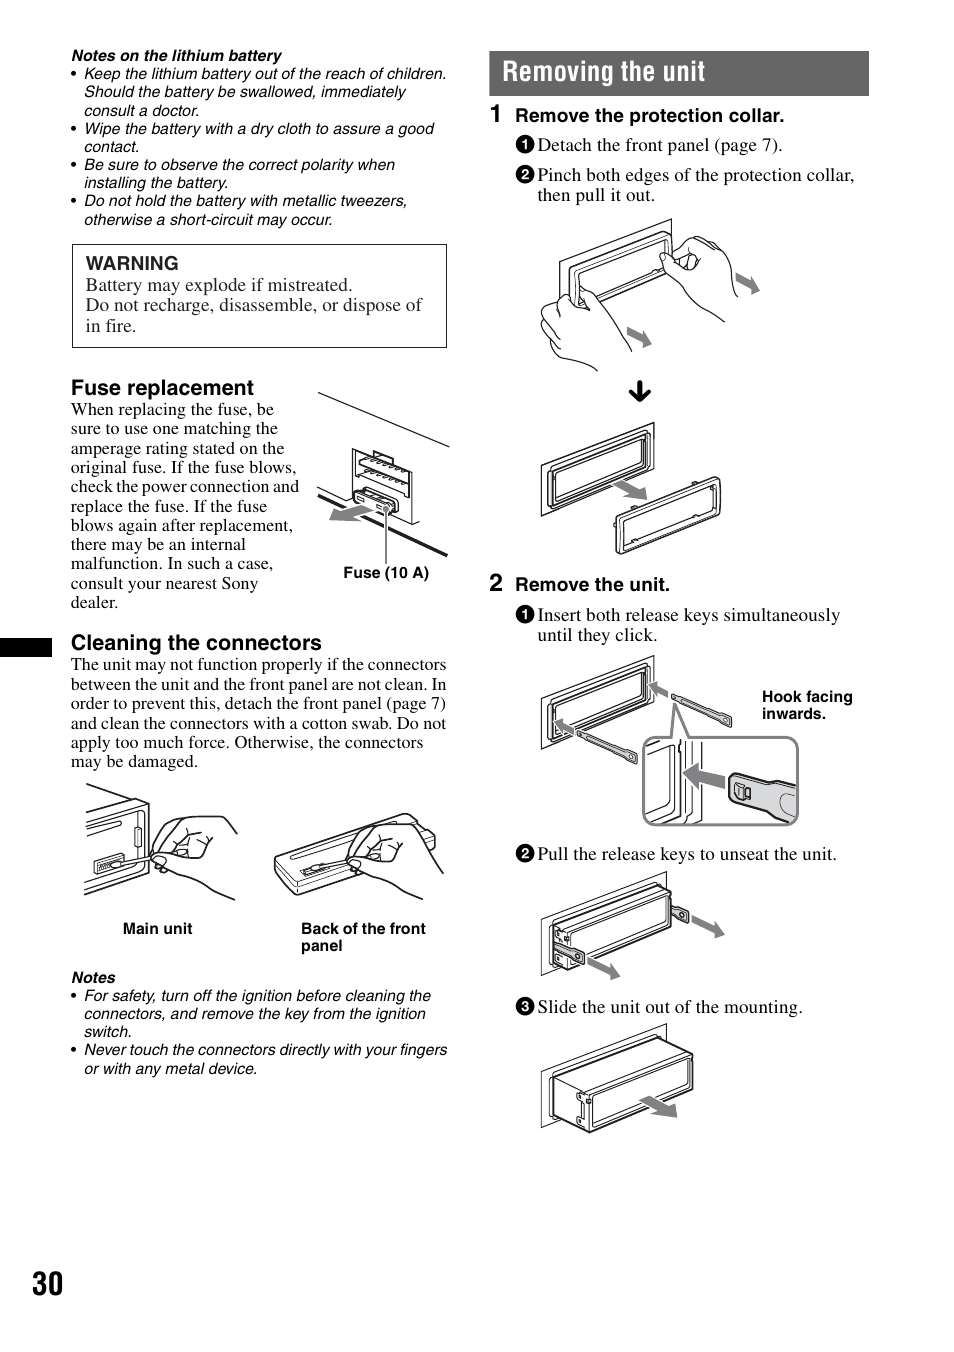 hight resolution of removing the unit sony mex bt38uw user manual page 30 72